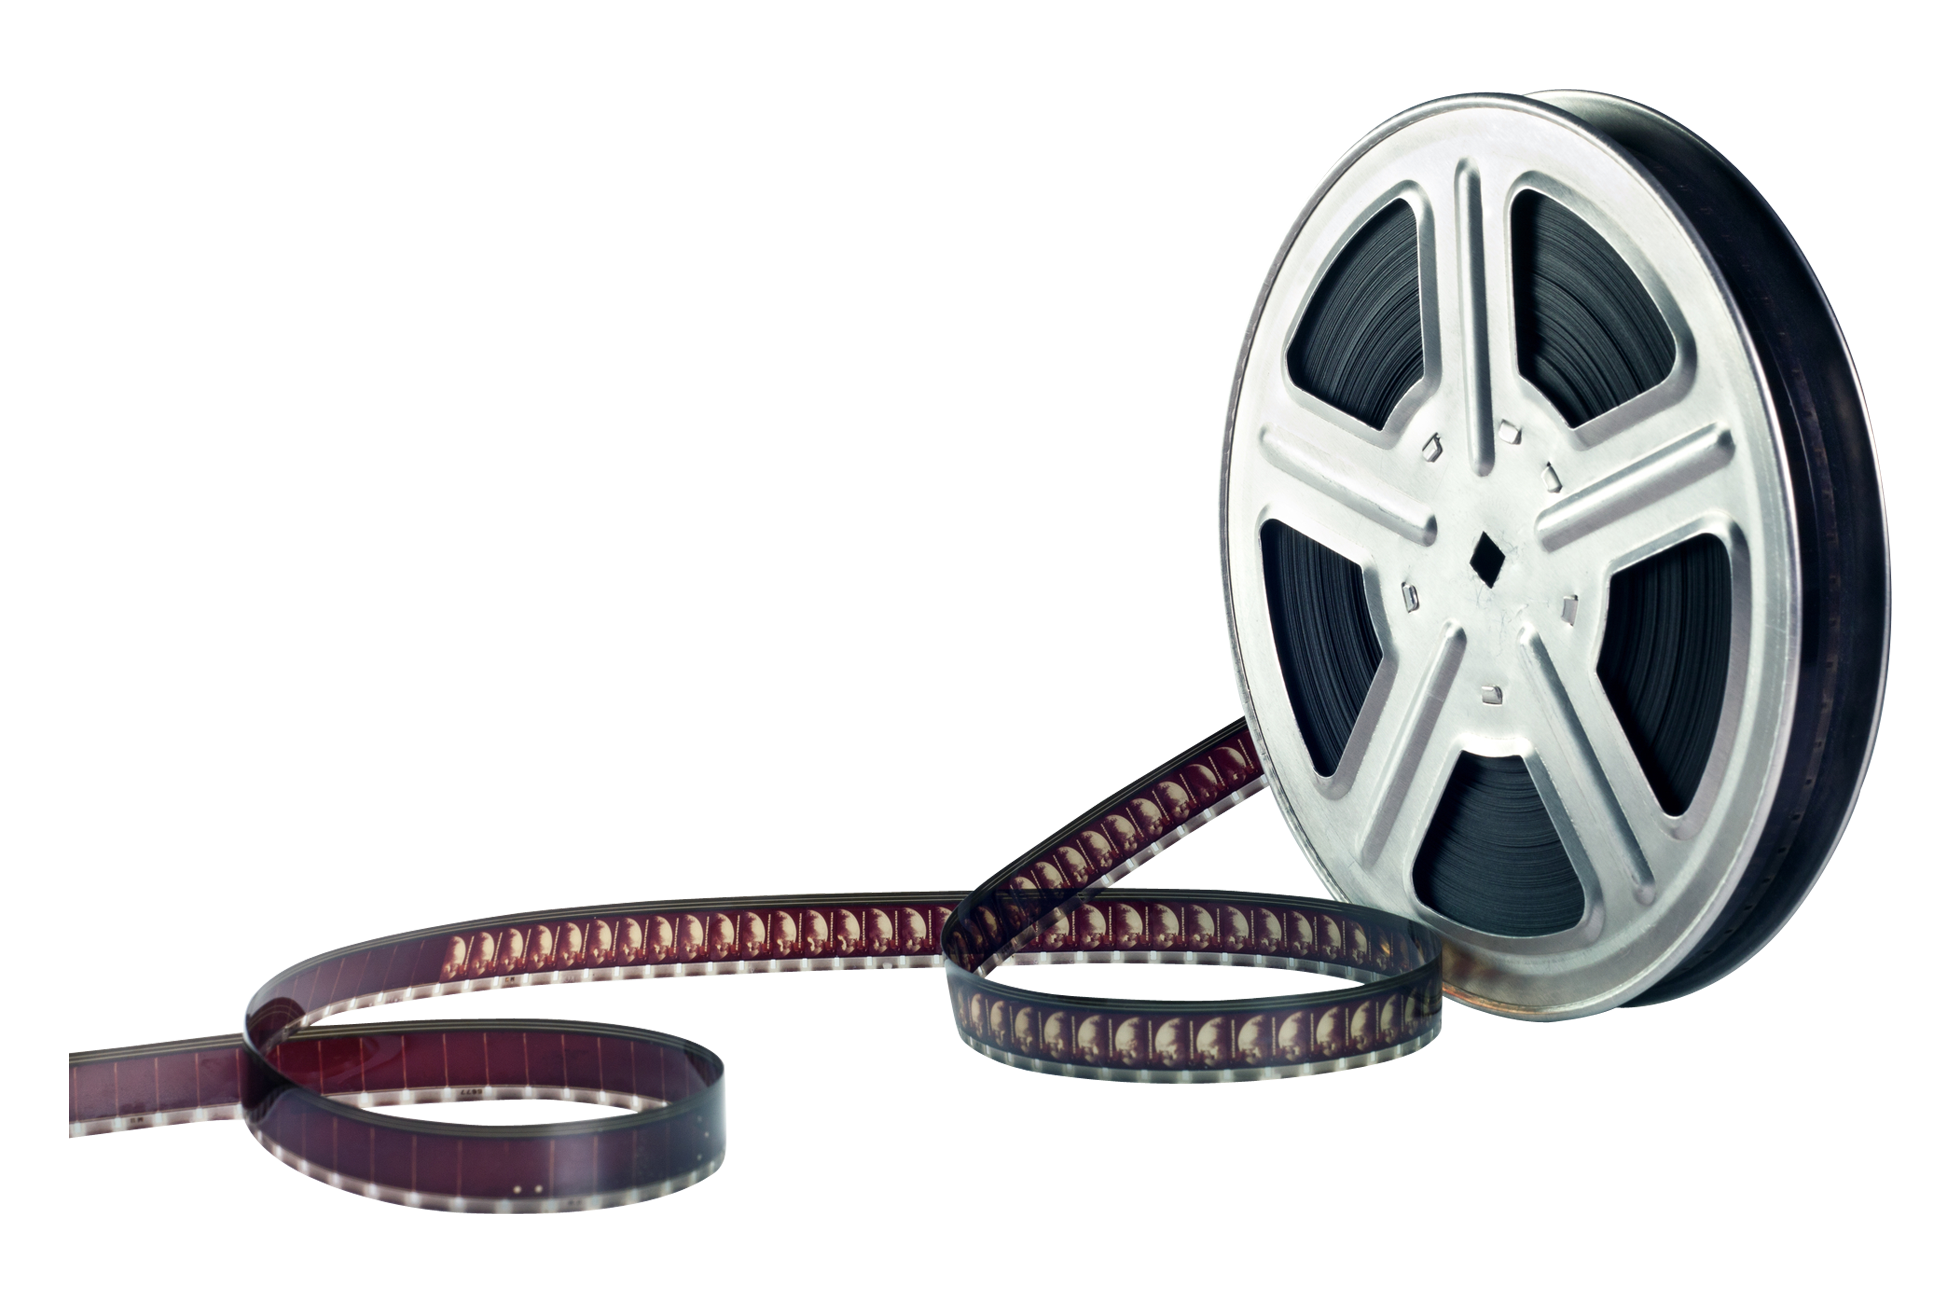 Movie Reel PNG-PlusPNG.com-1958 - Movie Reel PNG